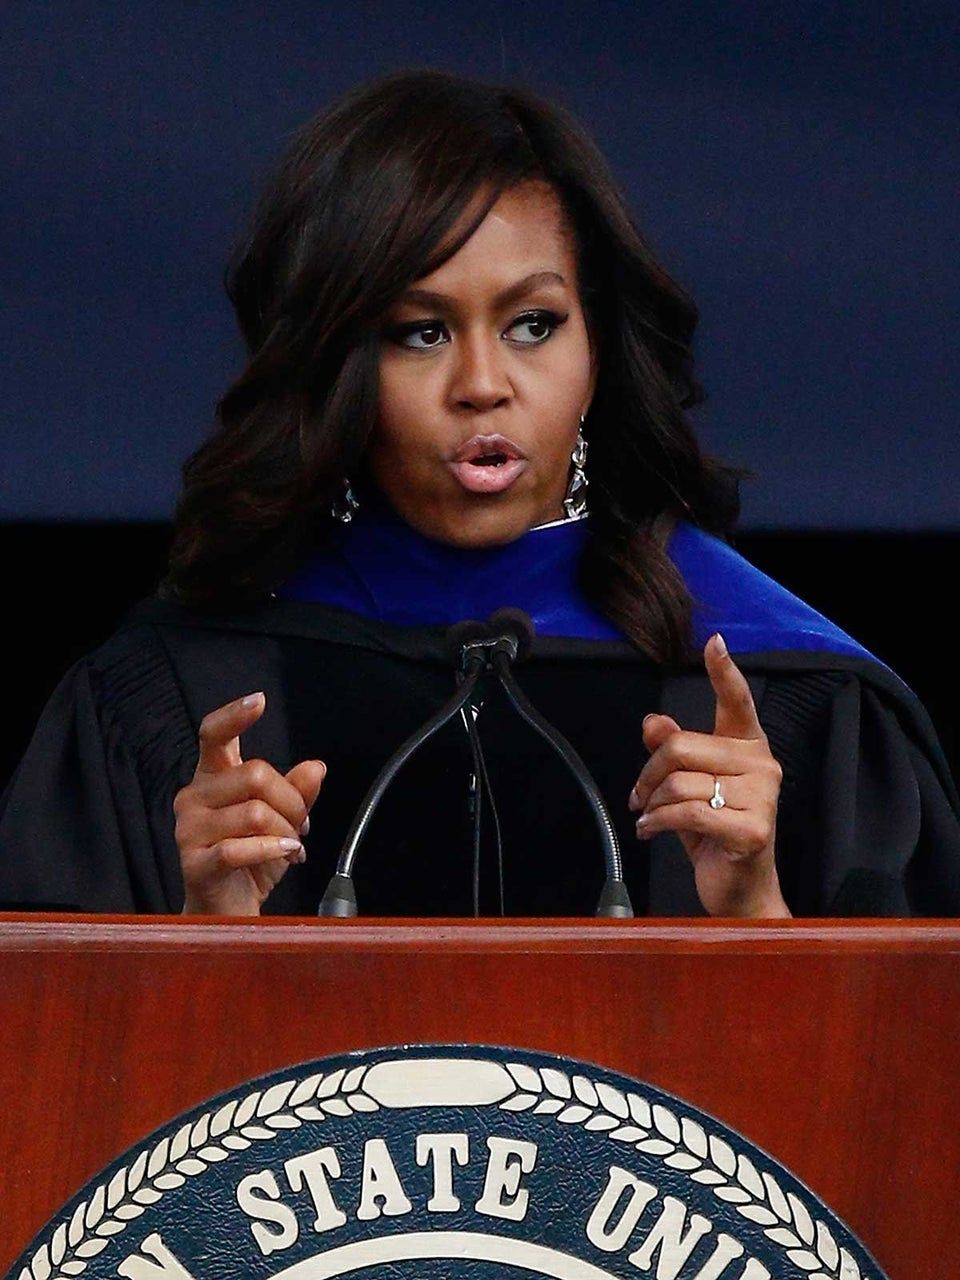 Michelle Obama On Barack Obama's Ability to 'Rise Above the Fray'